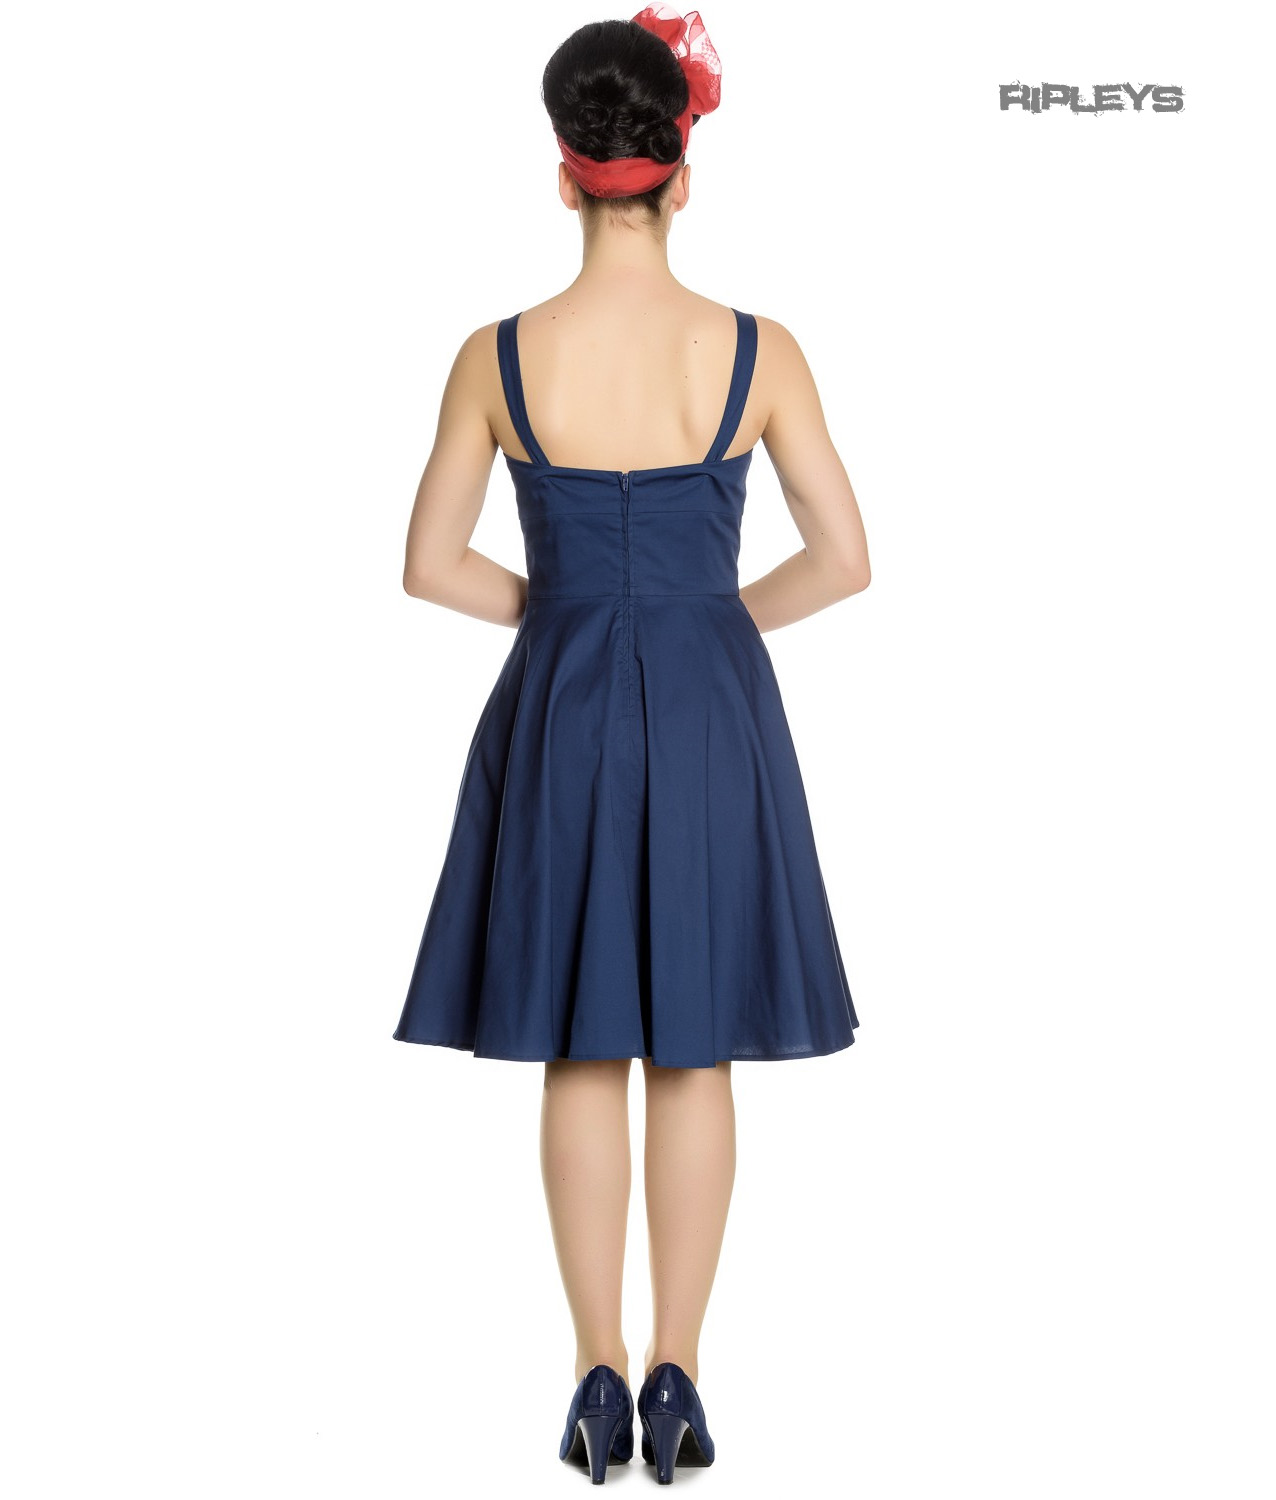 Hell-Bunny-Vintage-50s-Pin-Up-Dress-Navy-Blue-SELA-Nautical-Anchors-All-Sizes thumbnail 16